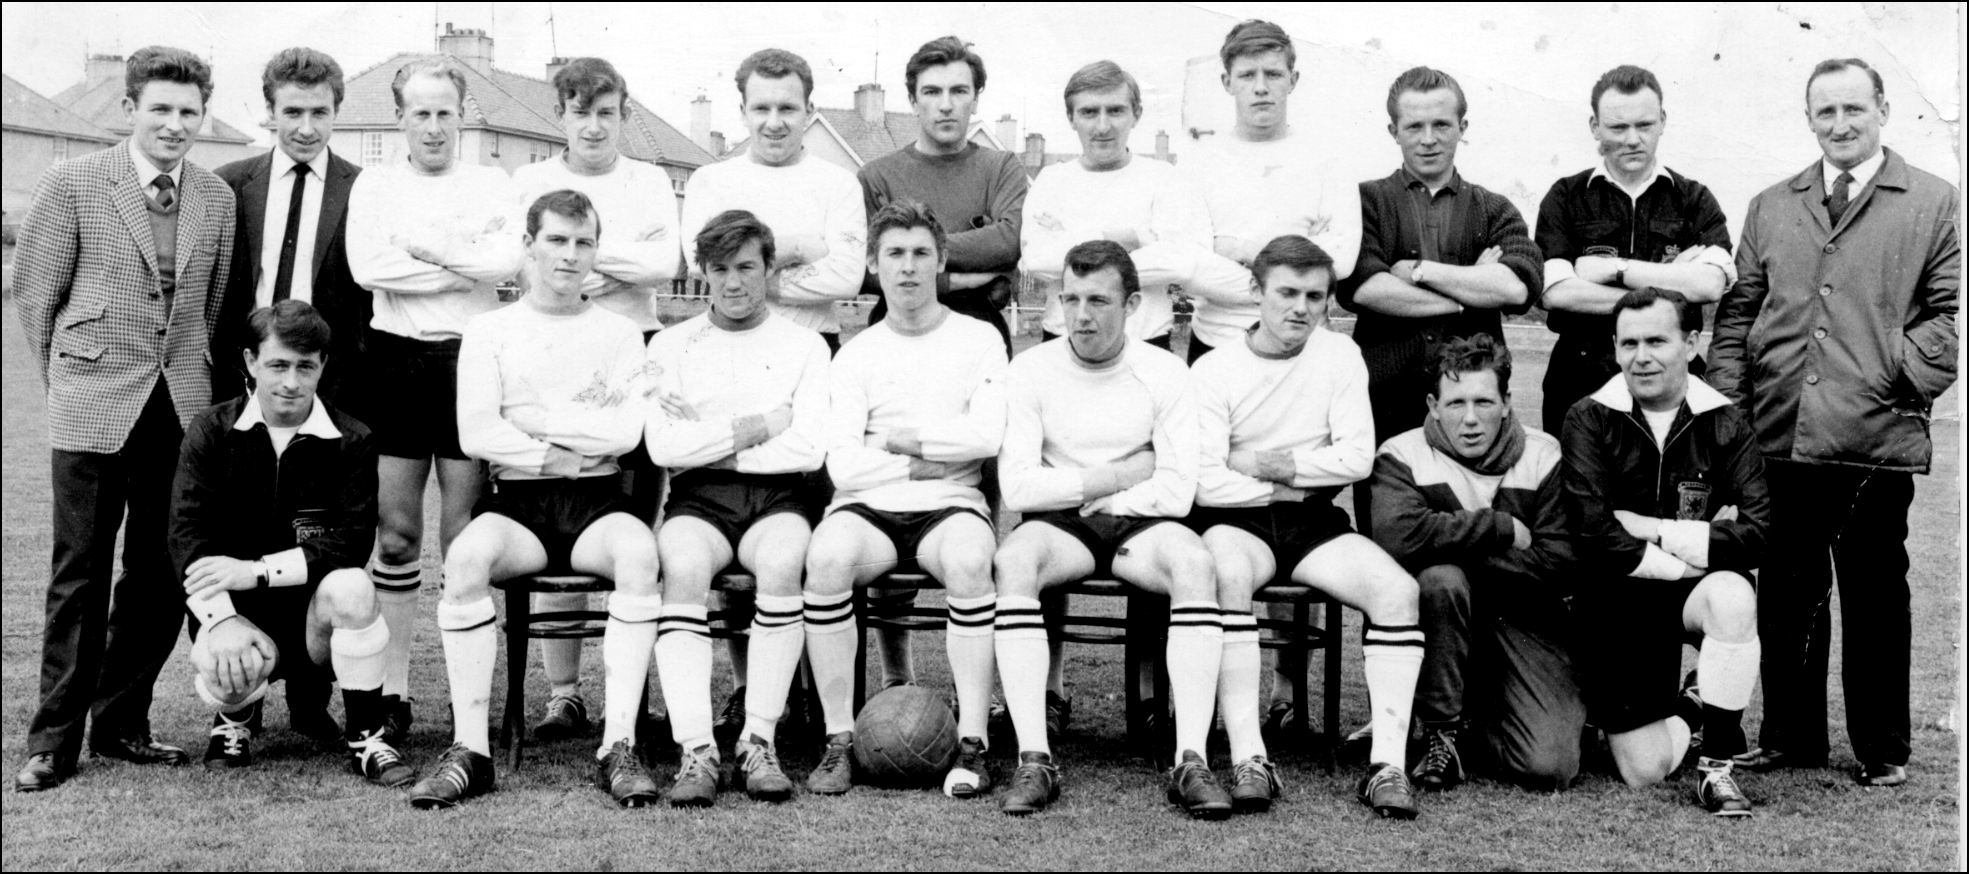 Caernarfon League Team '60's circa